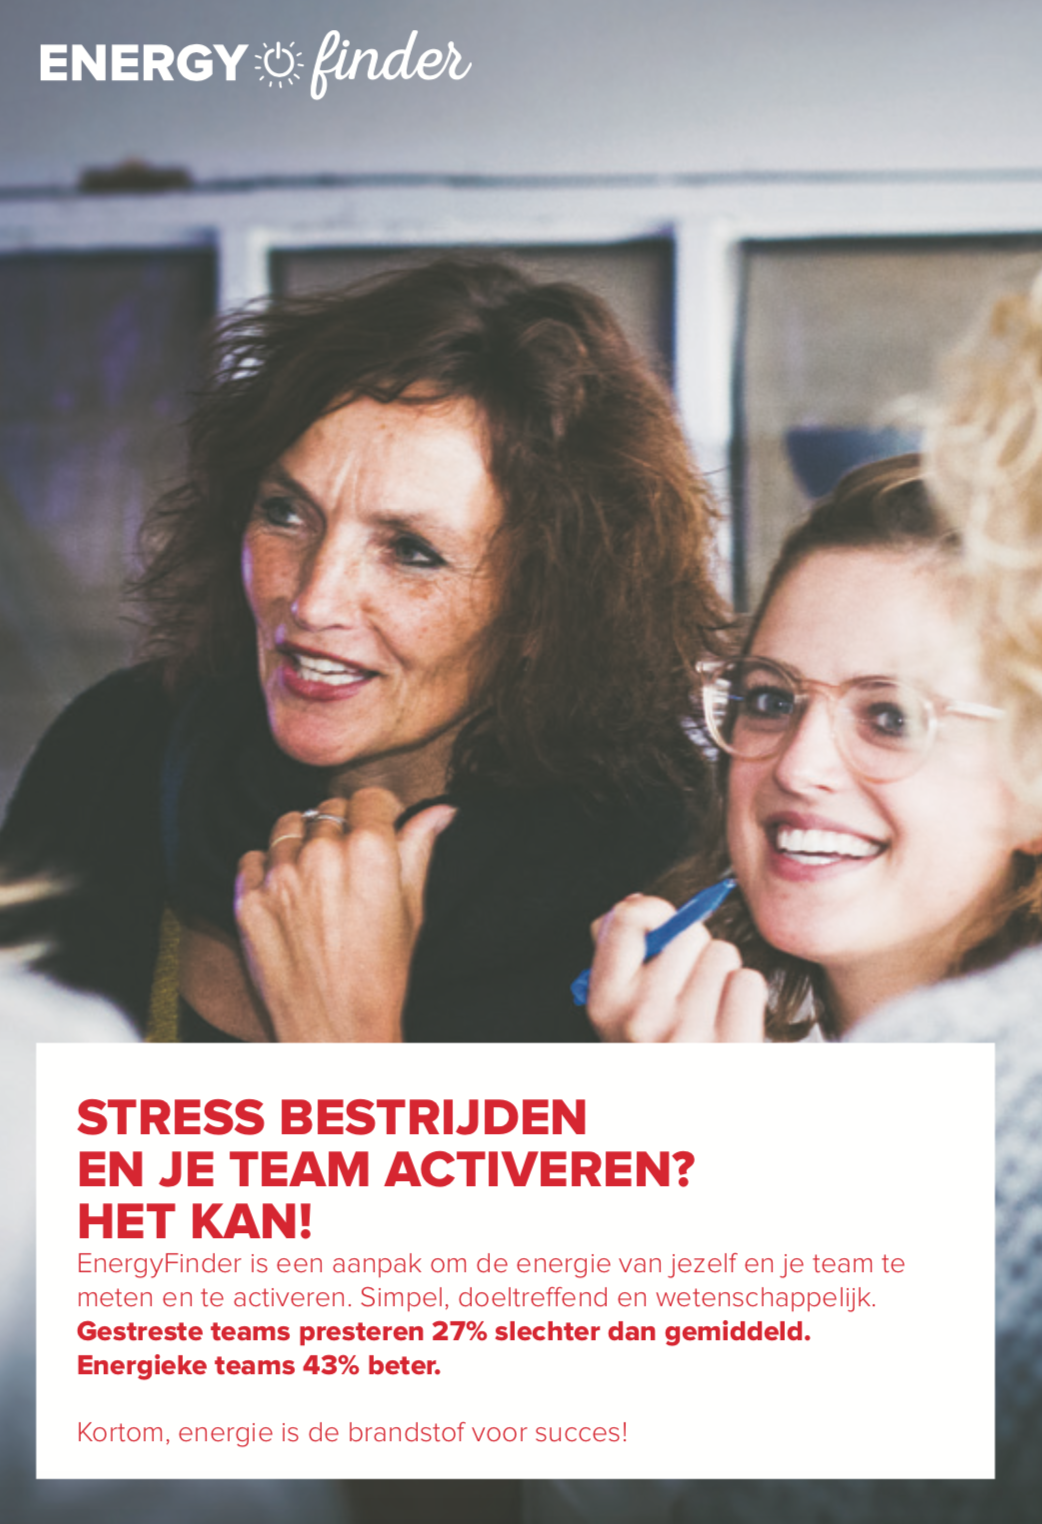 Meer energie in je team? Download de flyer